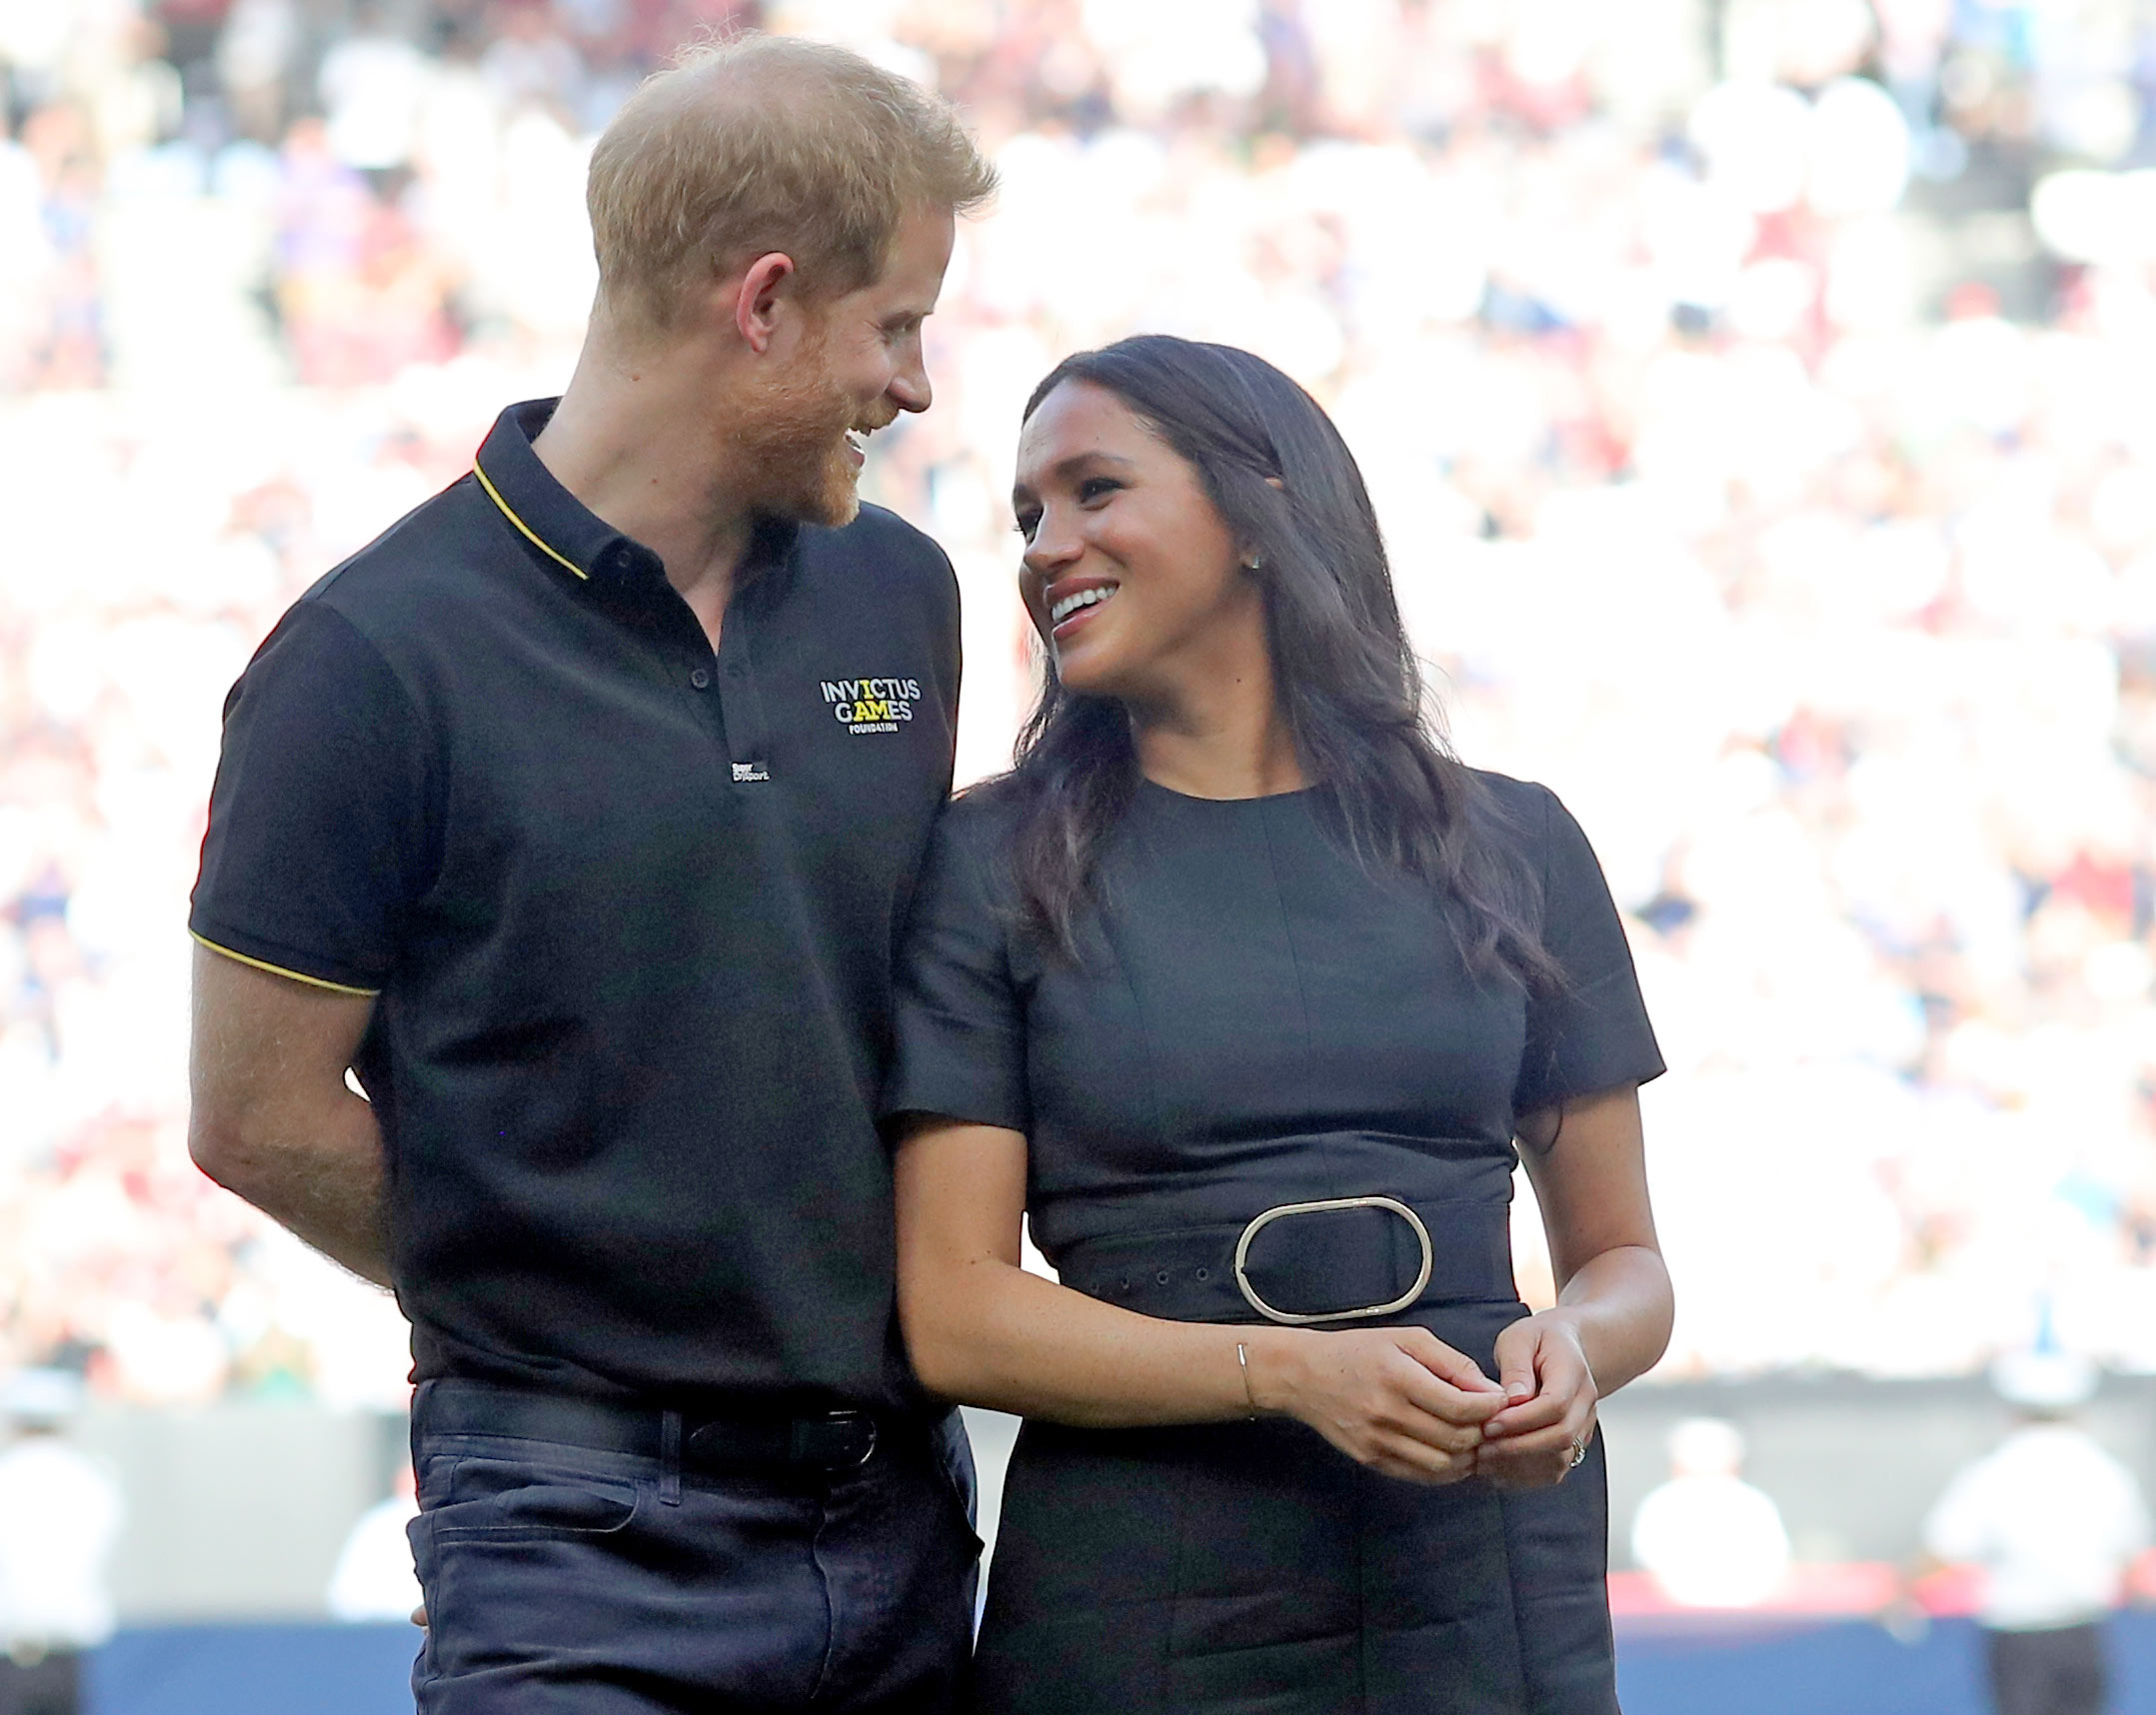 Why Meghan Markle and Prince Harry Just Unfollowed Everyone on Instagram